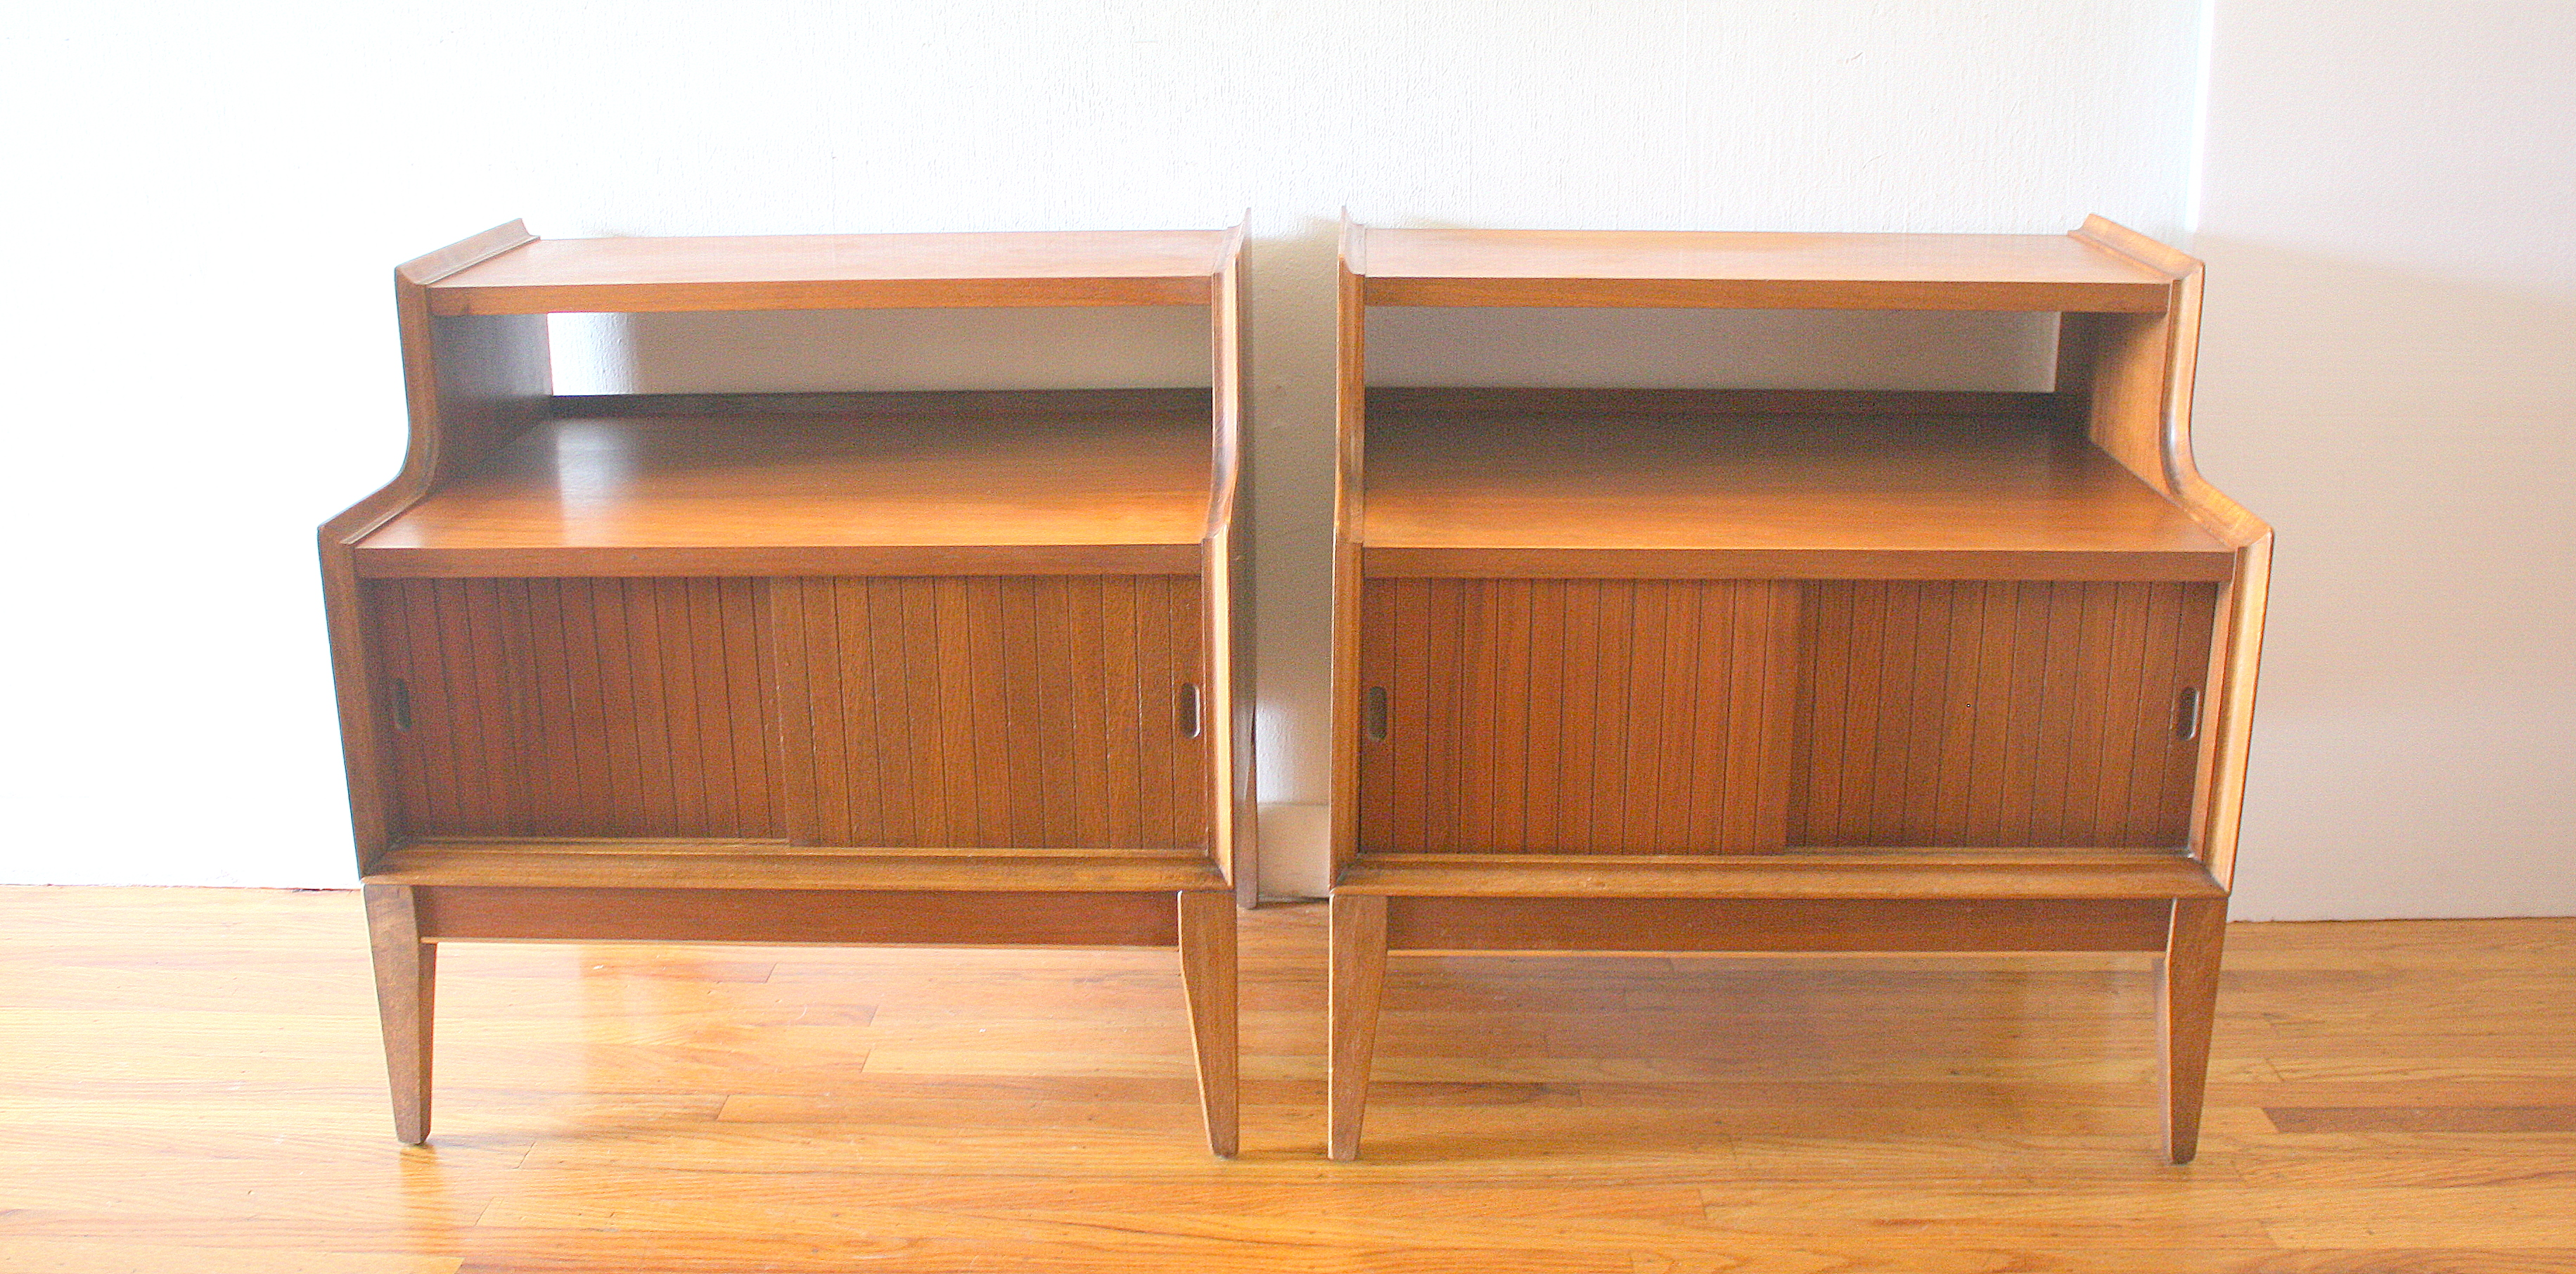 pair of 2 tiered nightstands withsliding doors 4.JPG